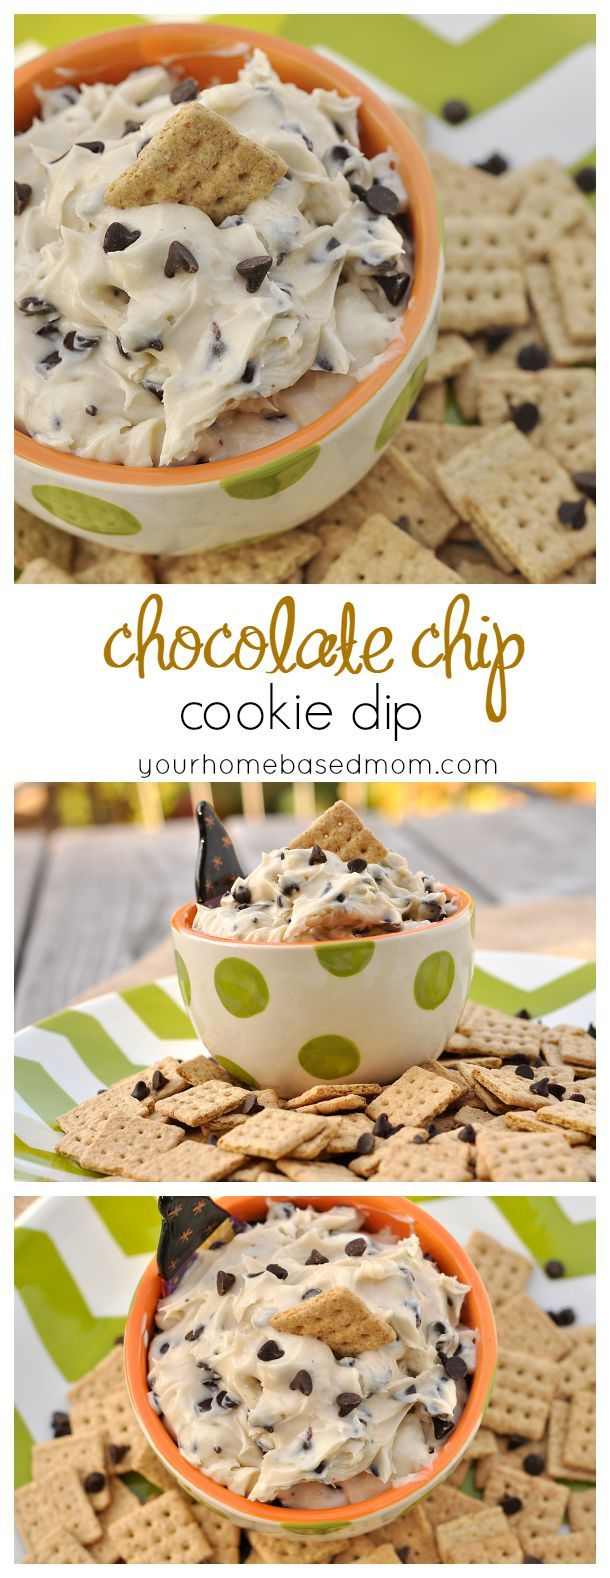 This Chocolate Chip Cookie Dip is addicting!  You are not going to be able to stop eating it.